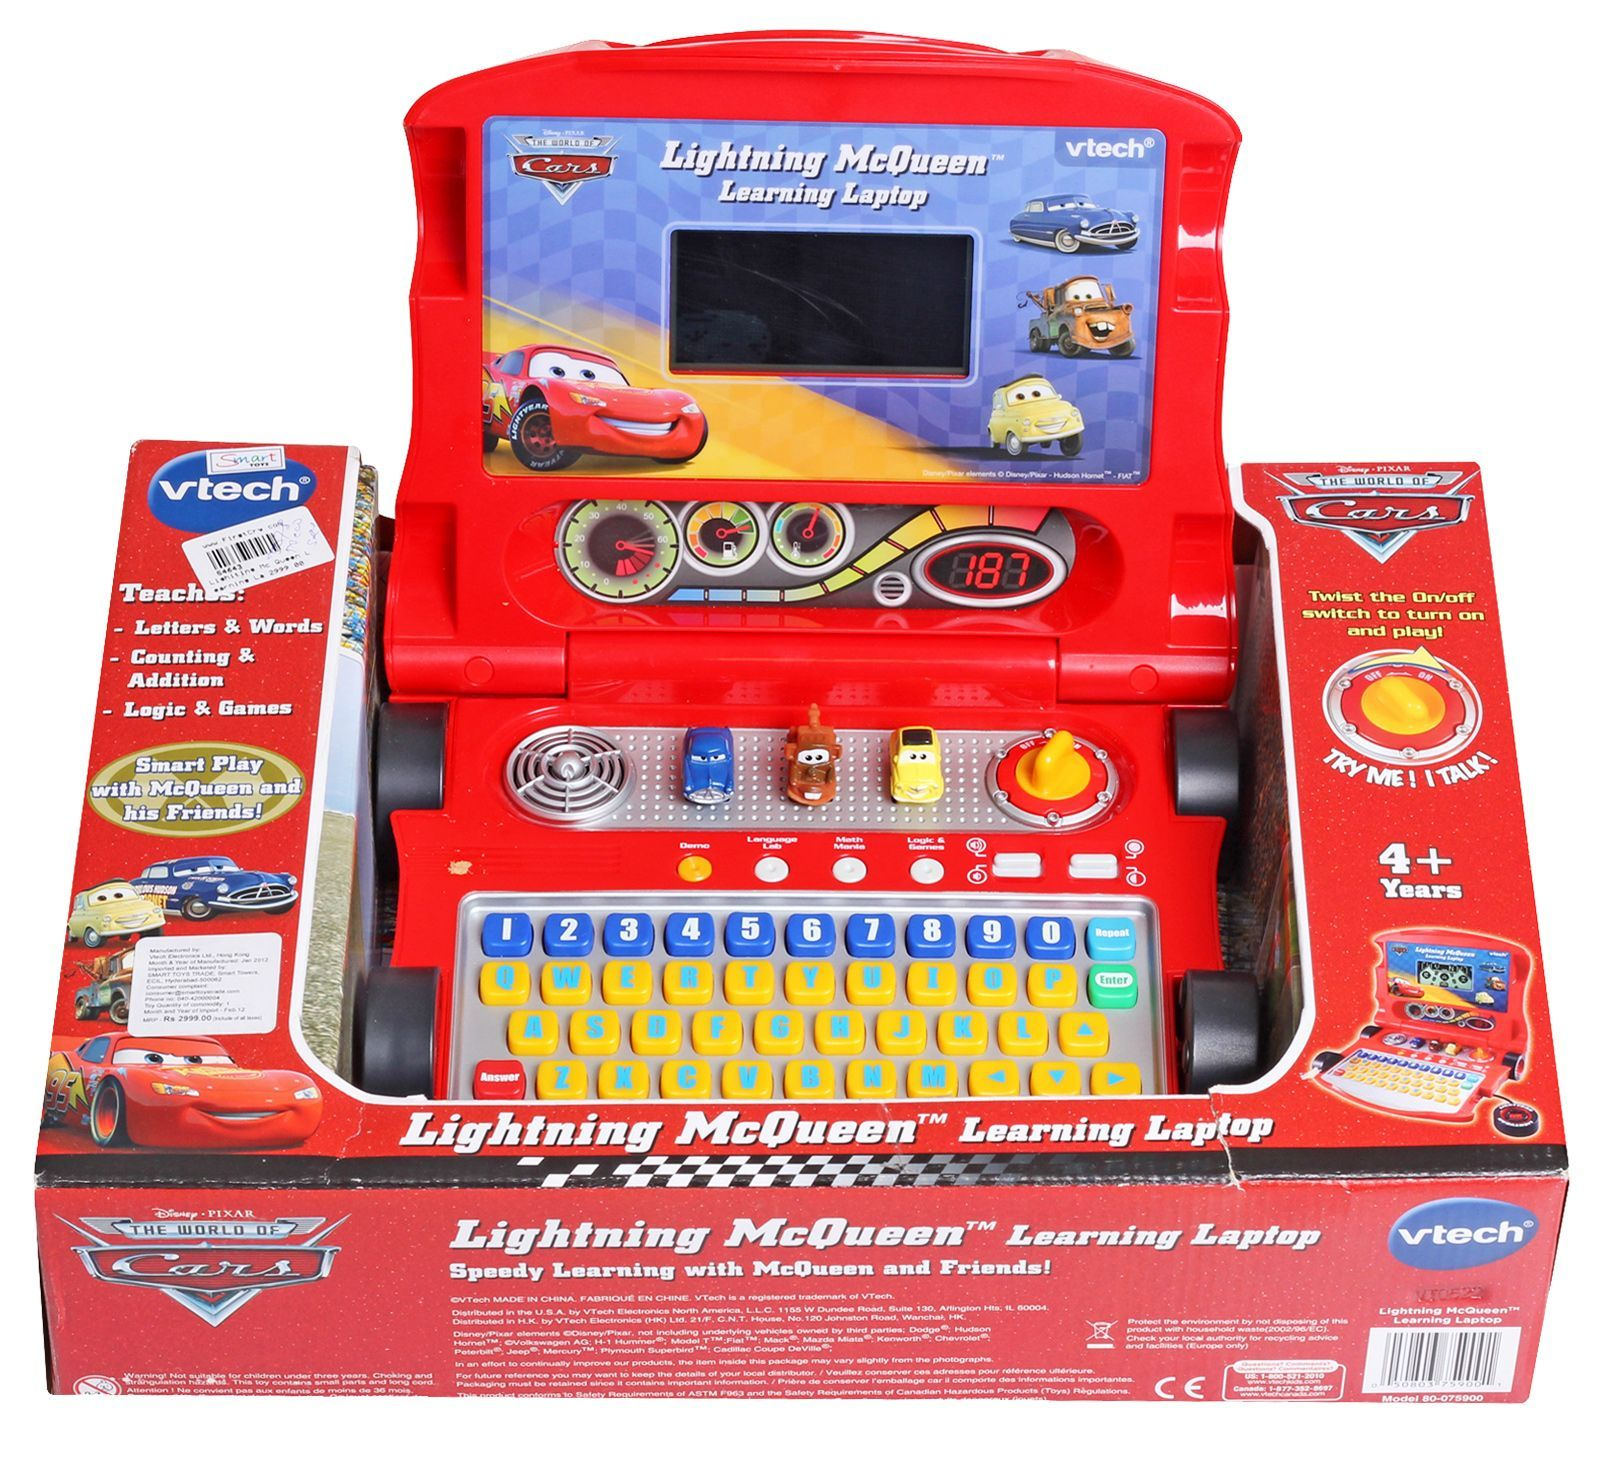 The learning laptop toy from Vtech